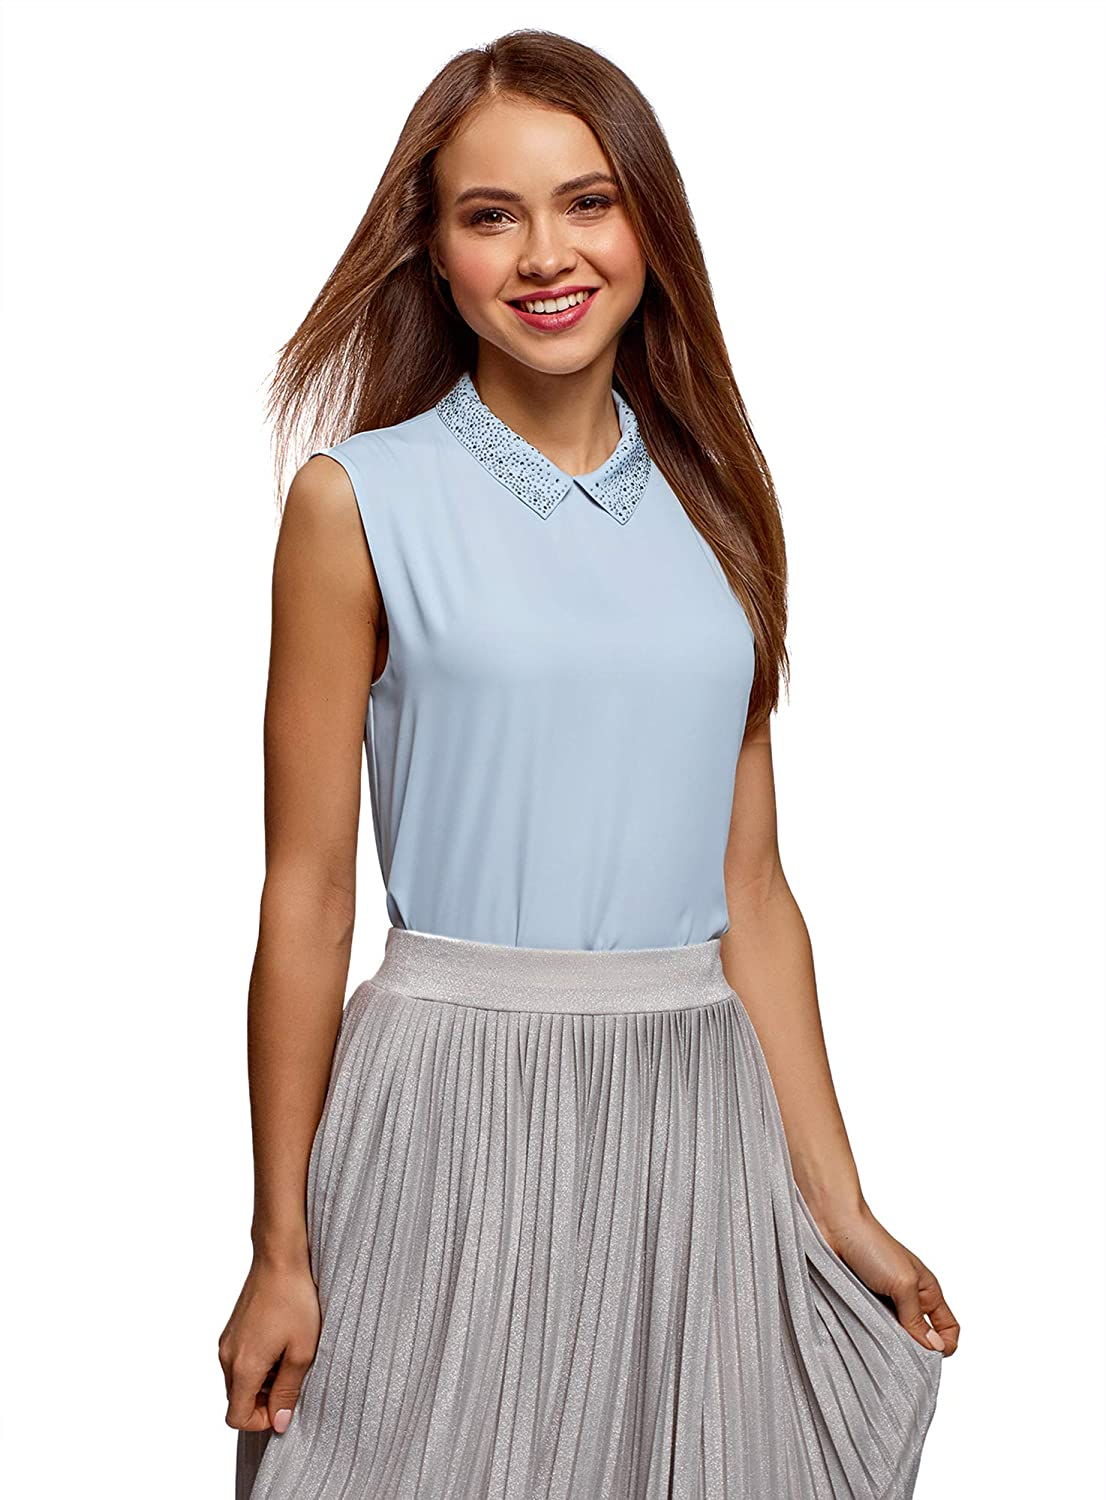 bluee (7000n) oodji Ultra Women's Top in Flowing Fabric with Collar Décor